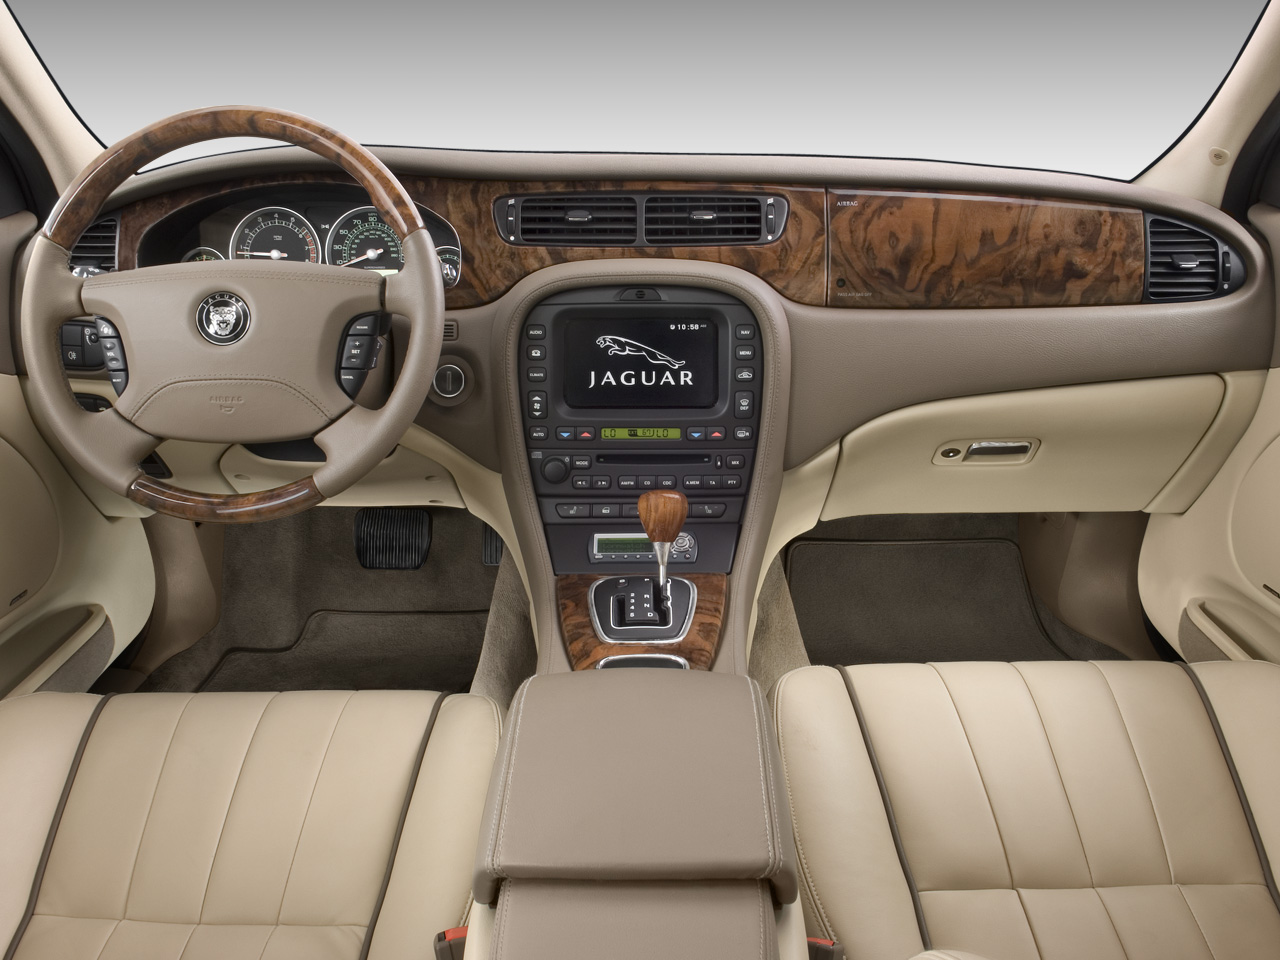 Reply for Jaguar x type interior parts